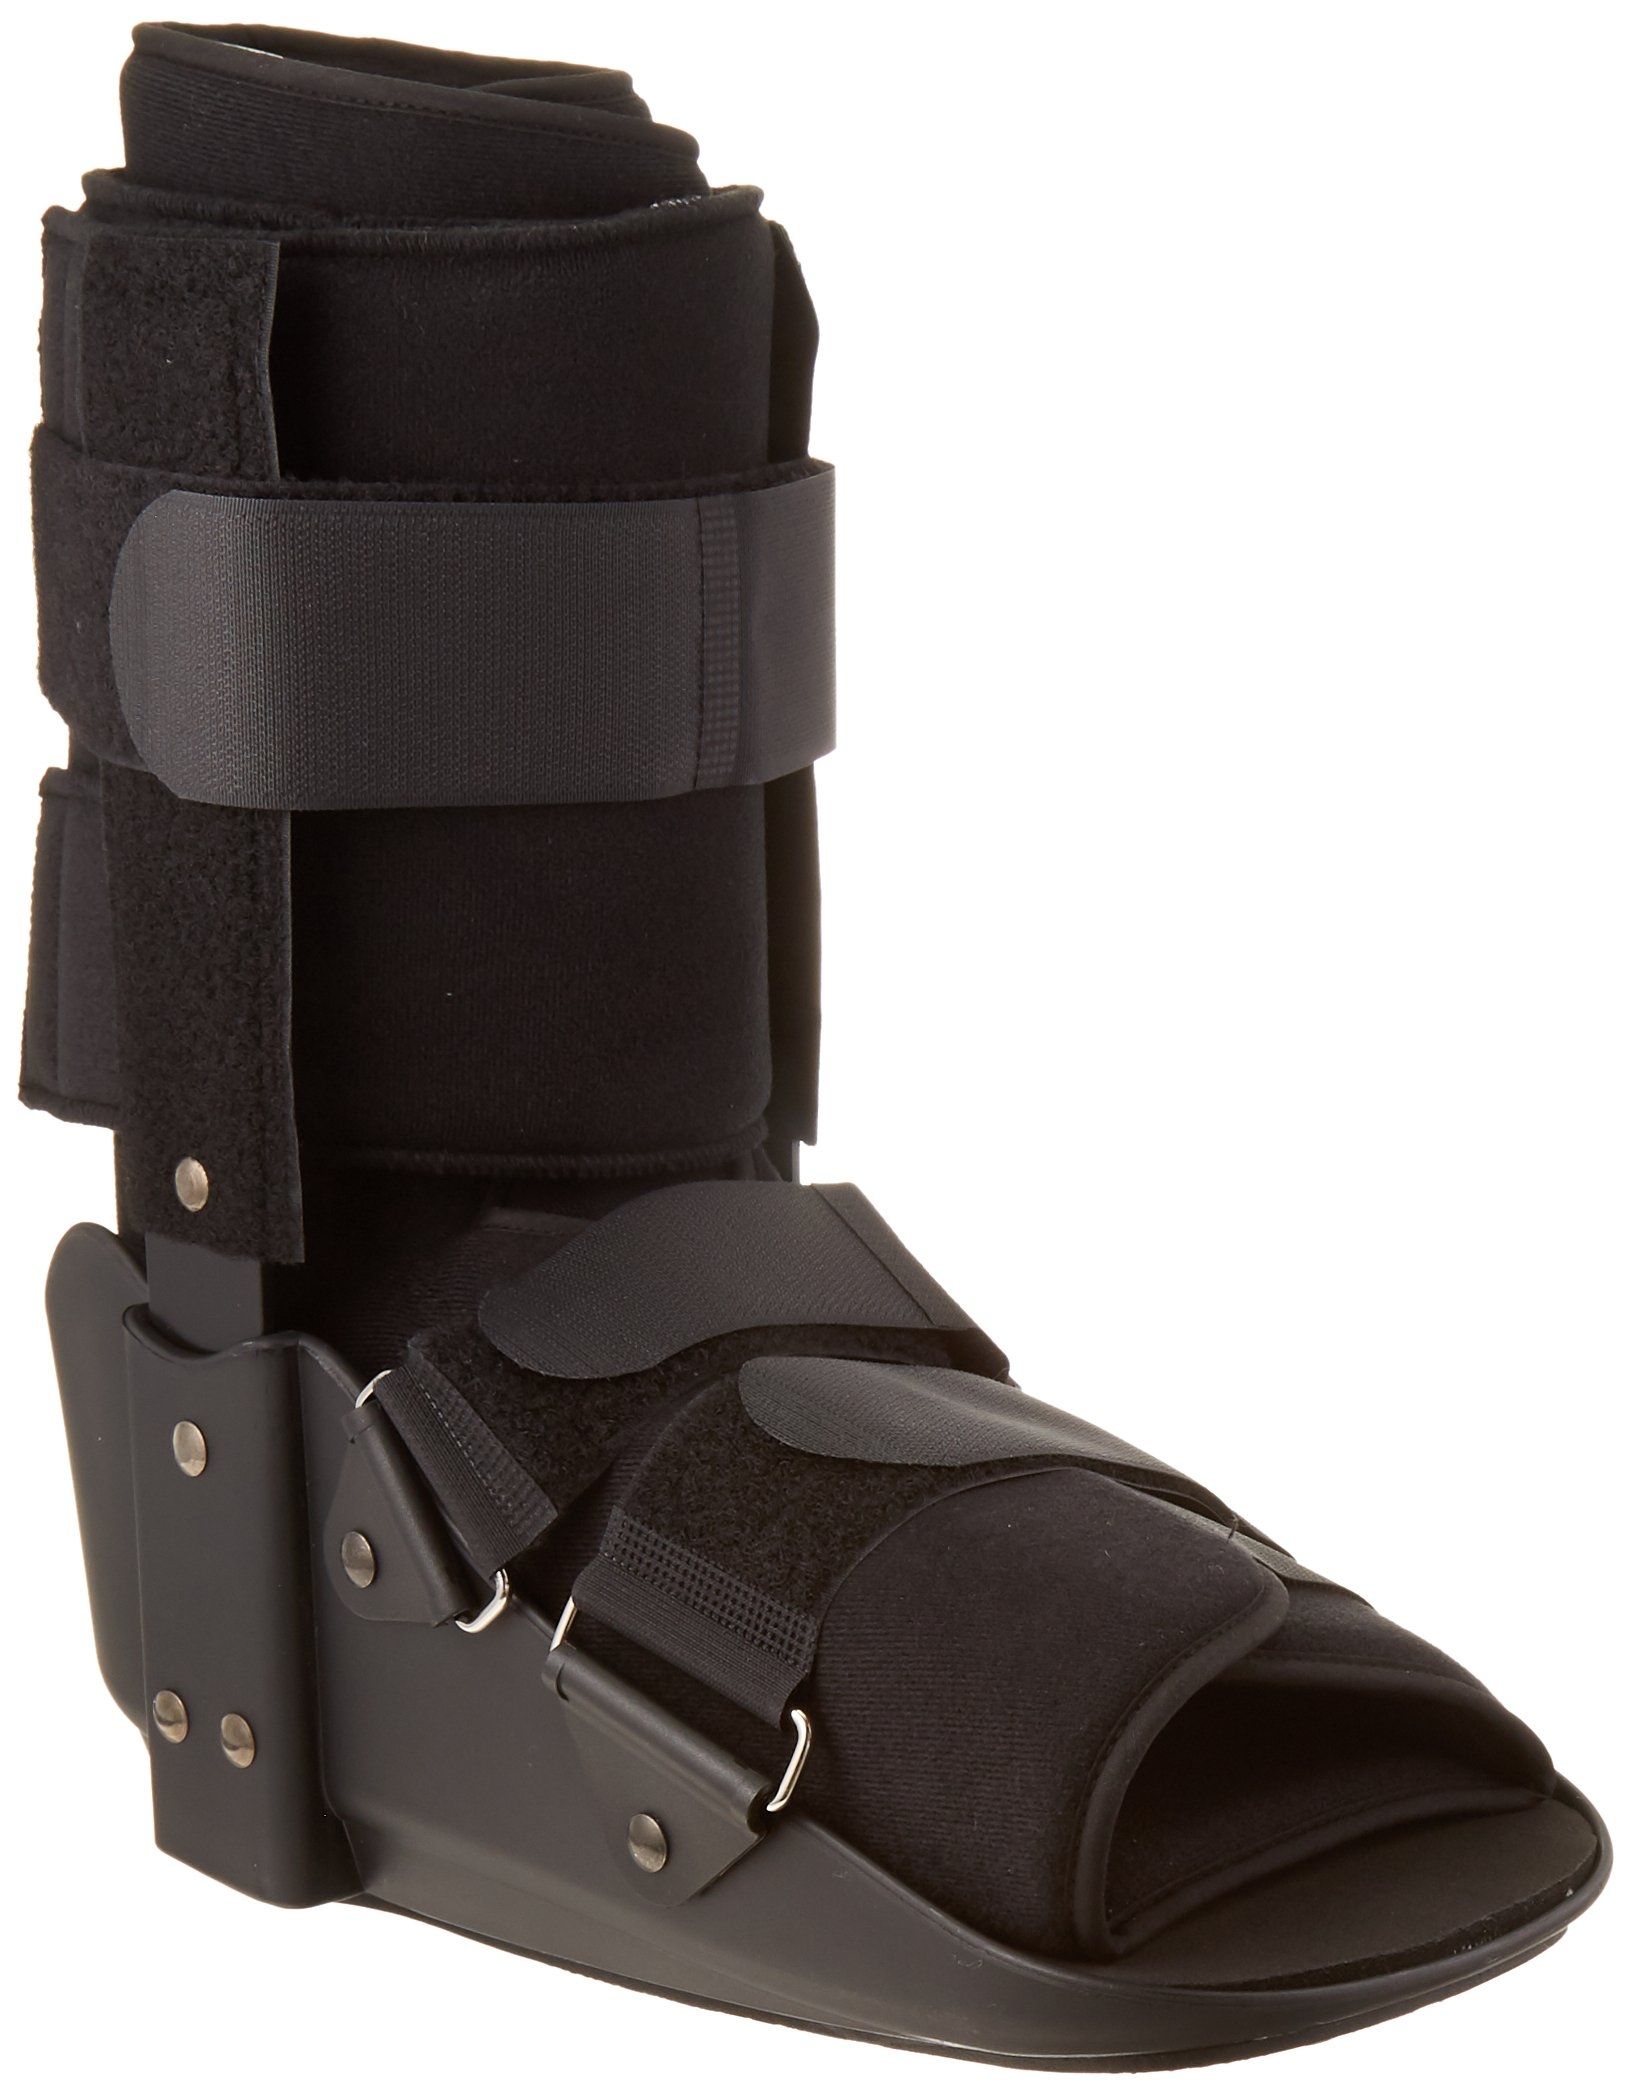 Sammons Preston Large Low Profile Fixed Ankle Walker Low, Comfort Brace for Recovery and Rehabilitation, Medical and Patient Use for Fractures, Ankle Sprains, Foot Injuries, Long Time Wear